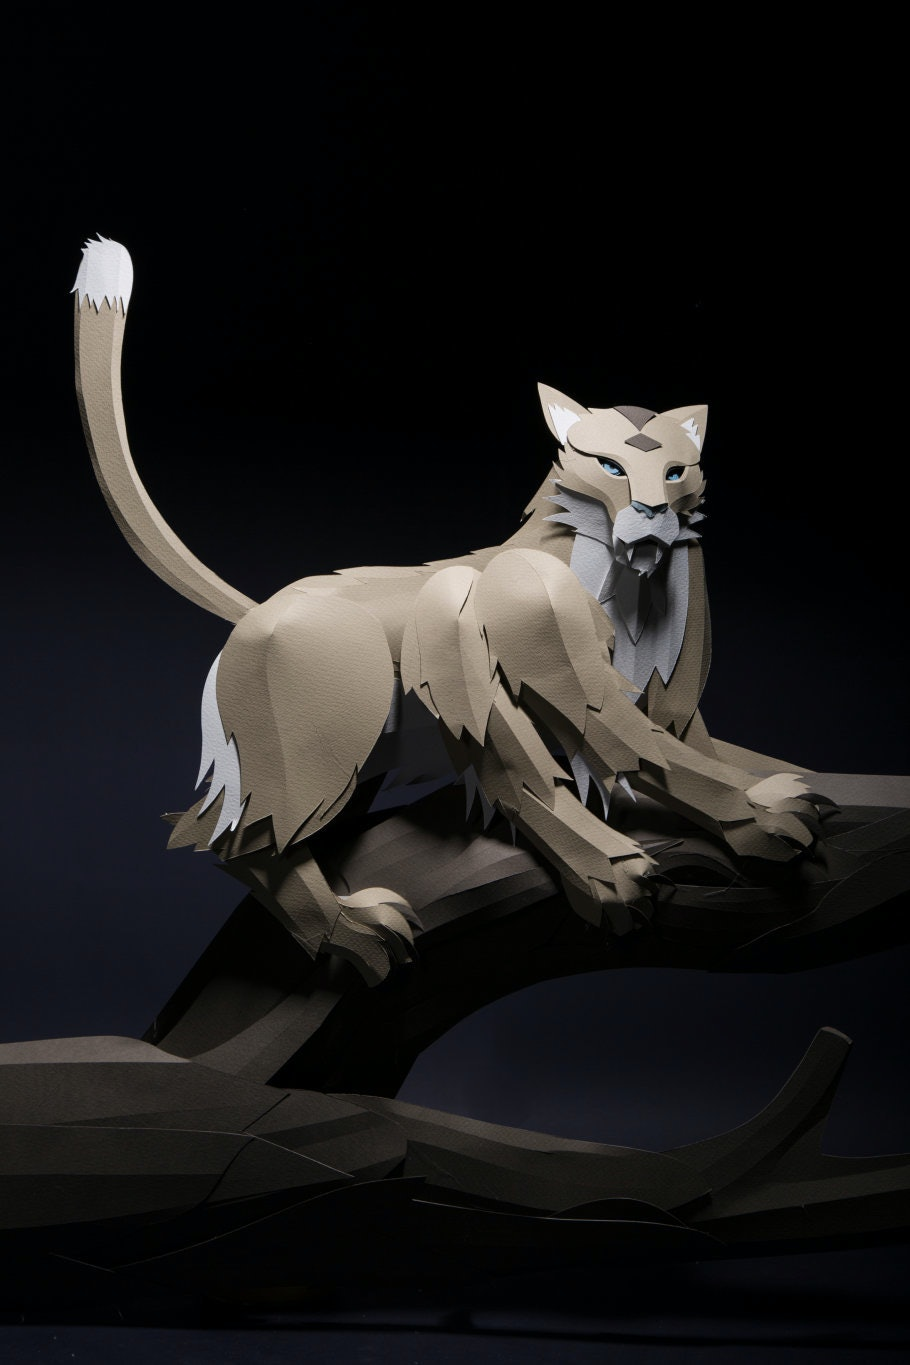 The Wampus Cat could appear in 'Fantastic Beasts and Where to Find Them' 2